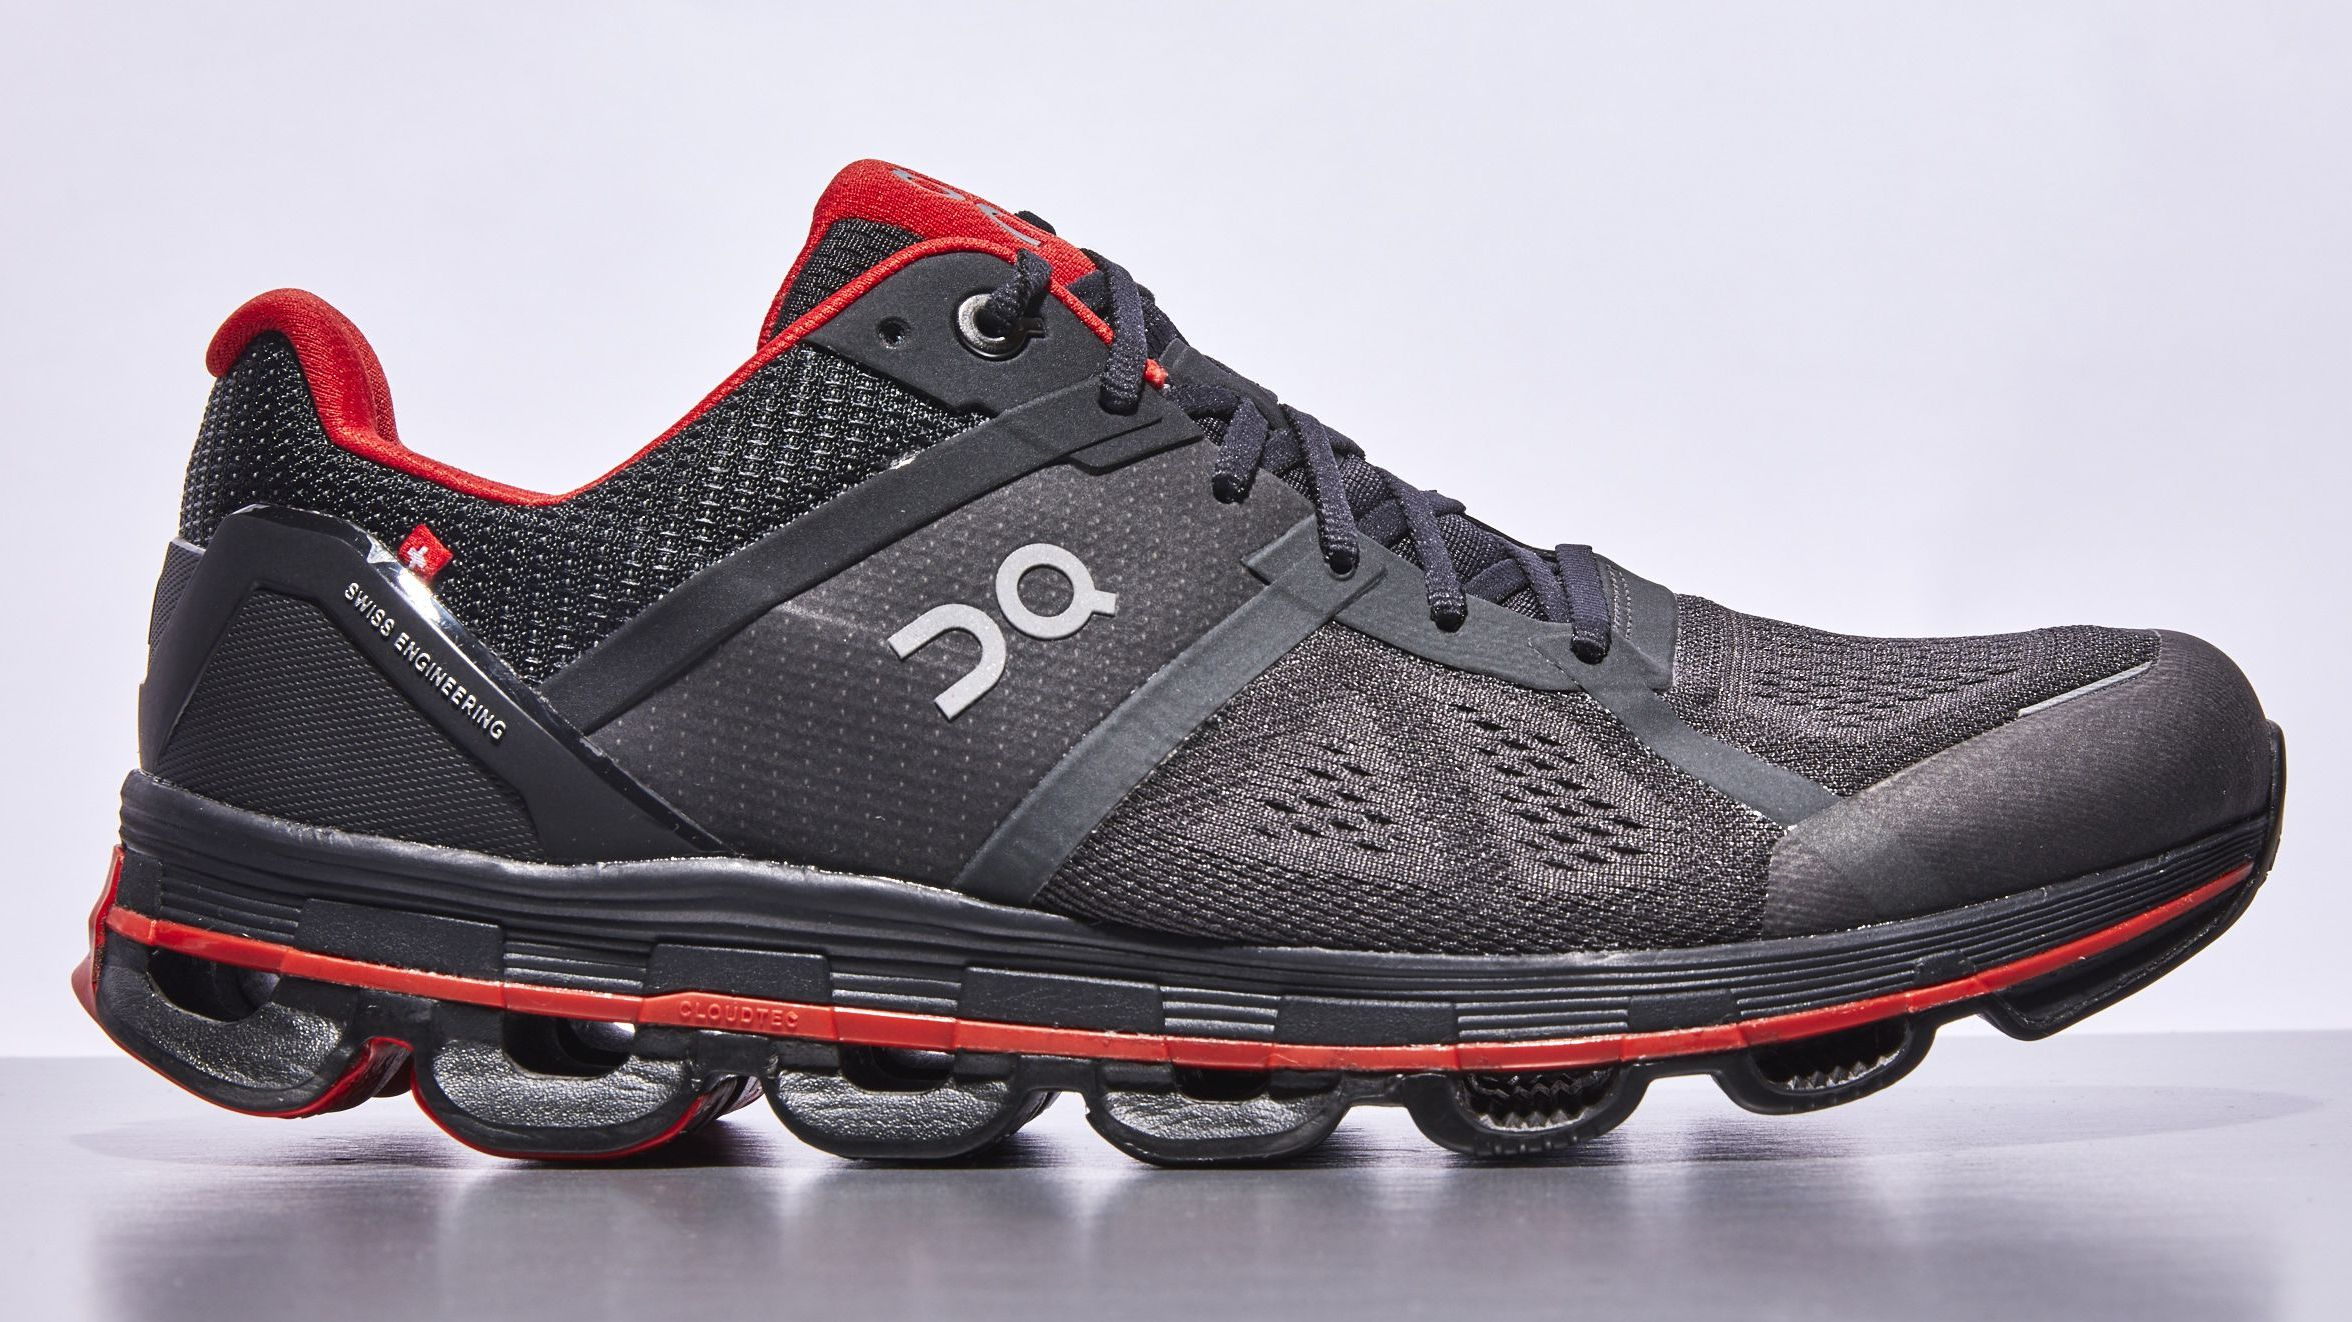 official photos 66c30 b1c28 Best On Running Shoes | On Running Shoe Reviews 2019